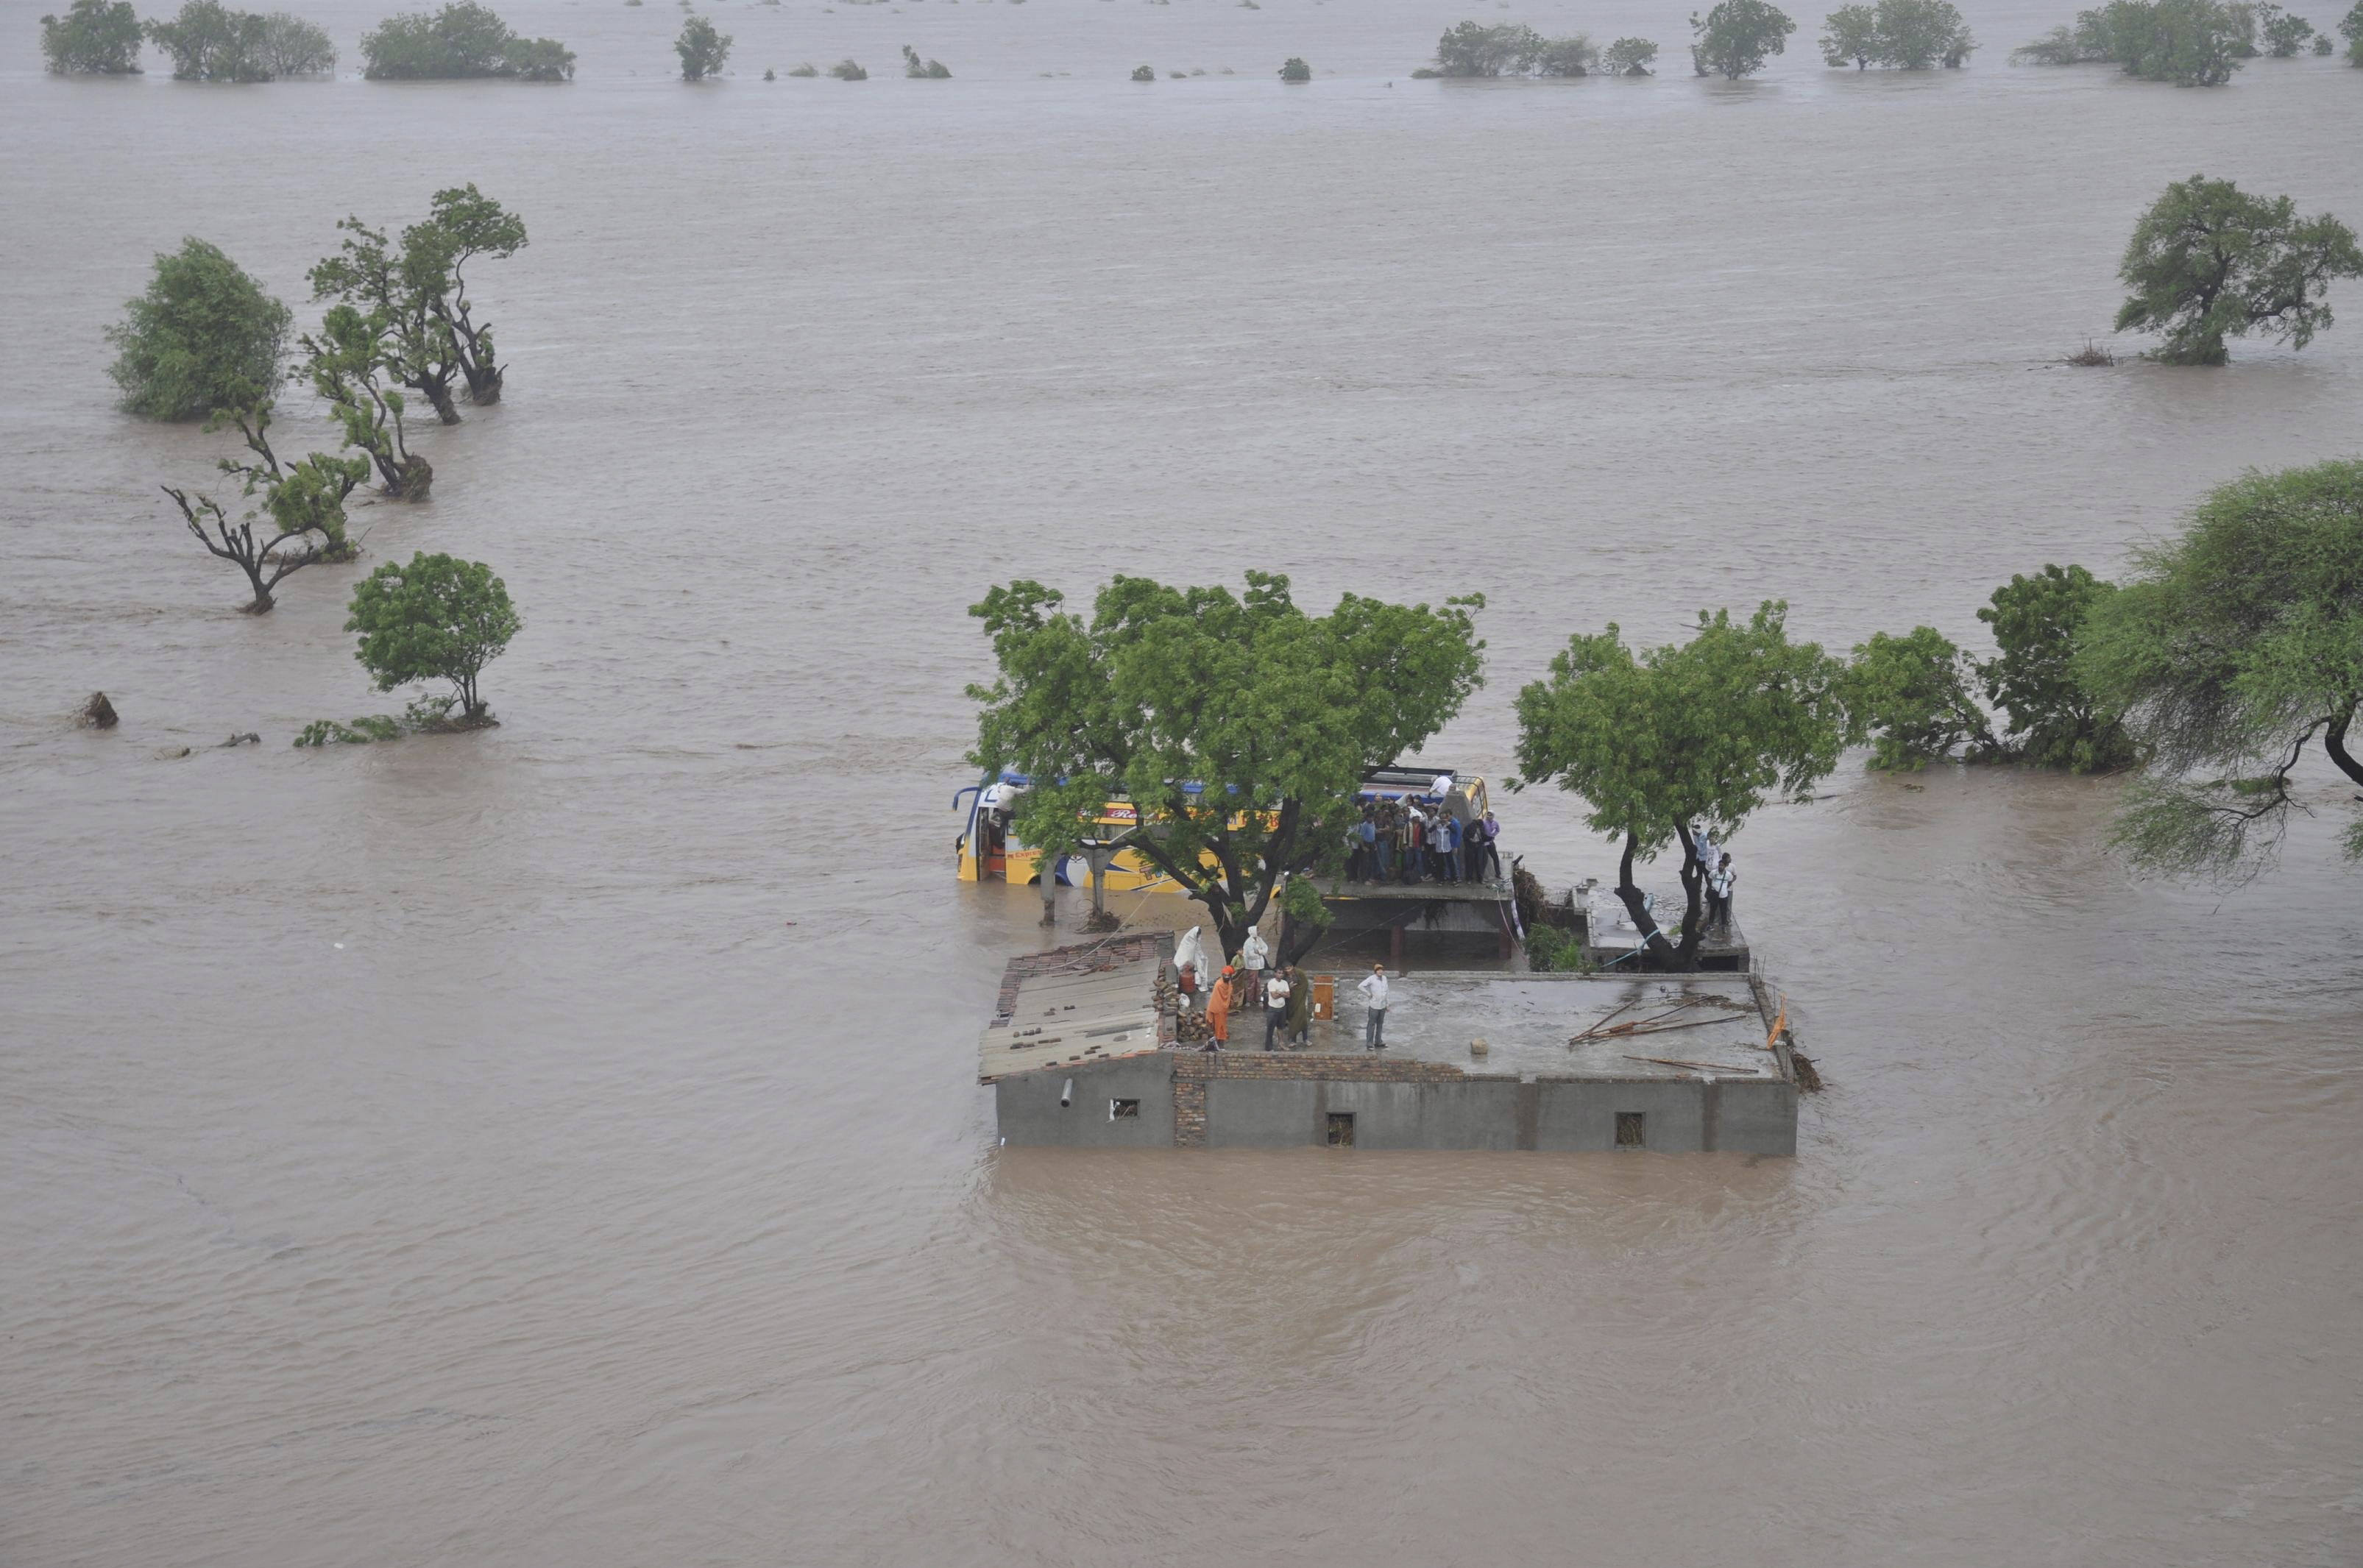 An aerial view shows flood victims standing atop their submerged houses in Amreli district of Gujarat, India, in this June 24, 2015 handout provided by the Indian Air Force.